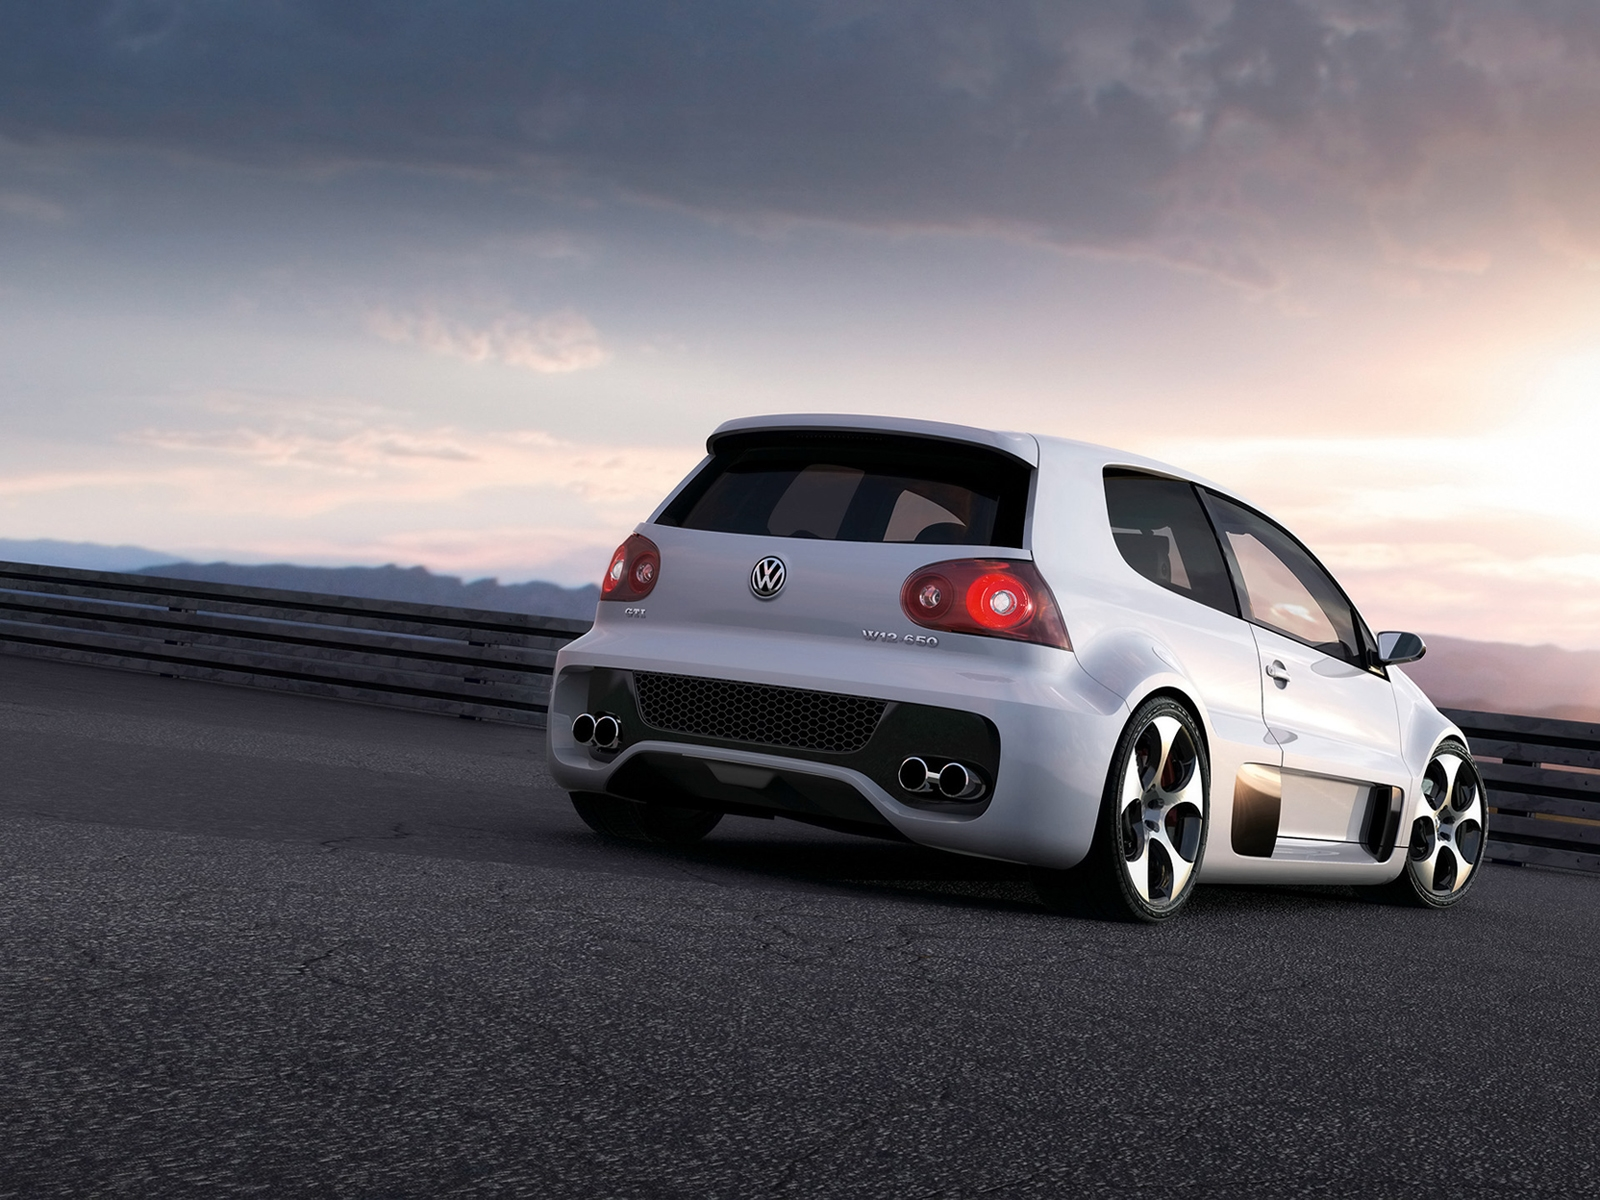 volkswagen golf gti wallpapers hd